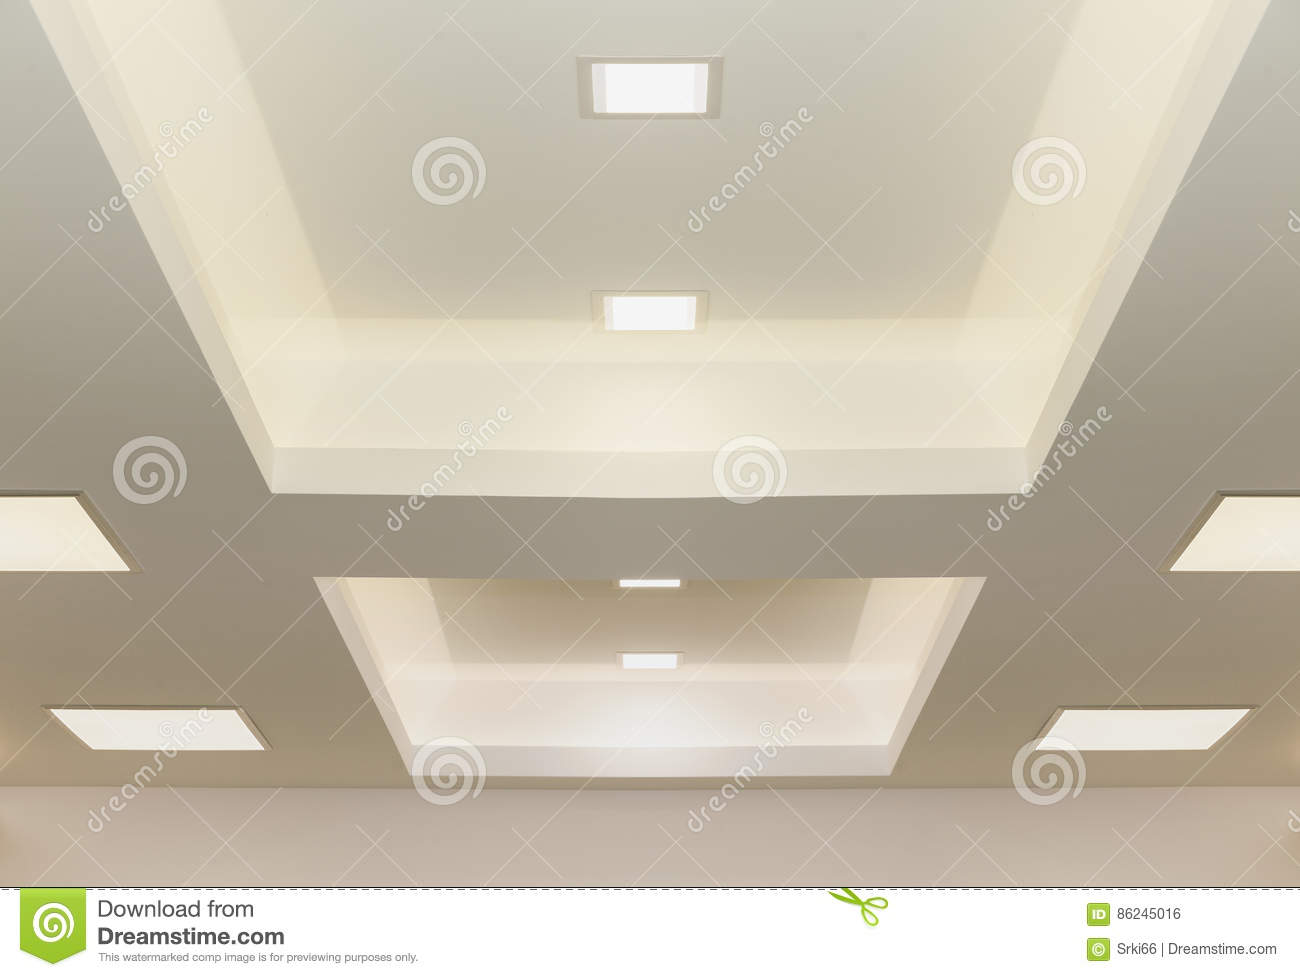 Plafoniere Soffitto Industriale : Indicatori luminosi di soffitto moderni fotografia stock